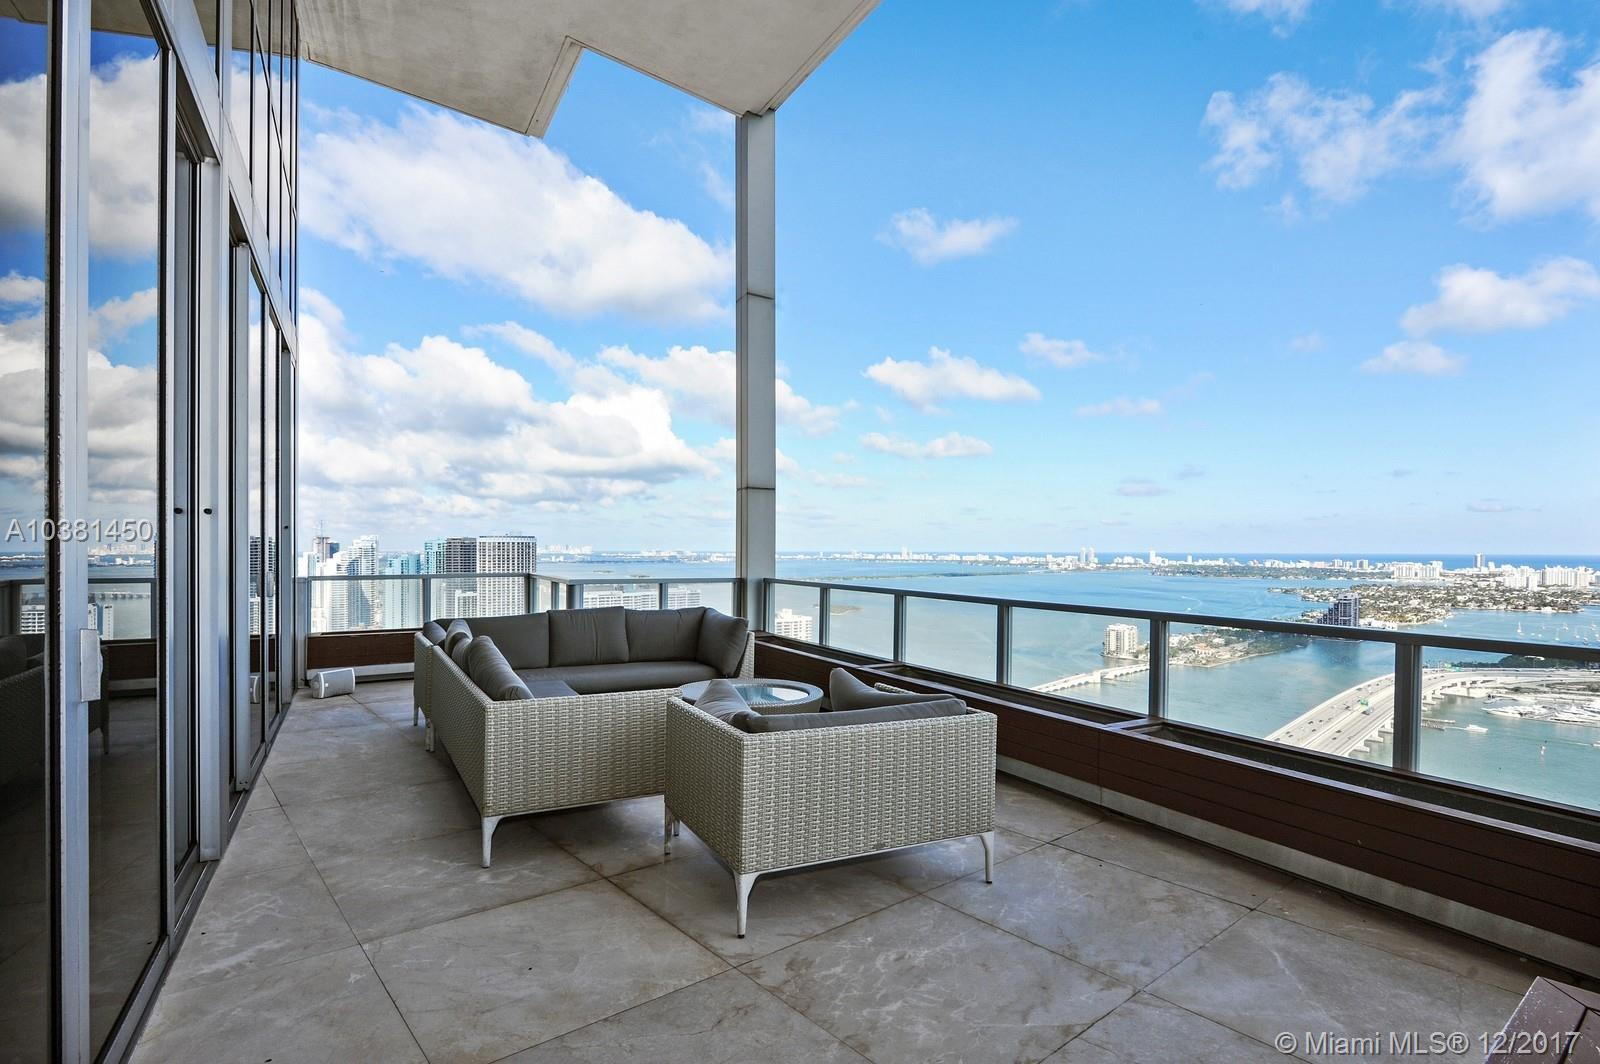 view from Mario Chalmers Marquis Residences condo